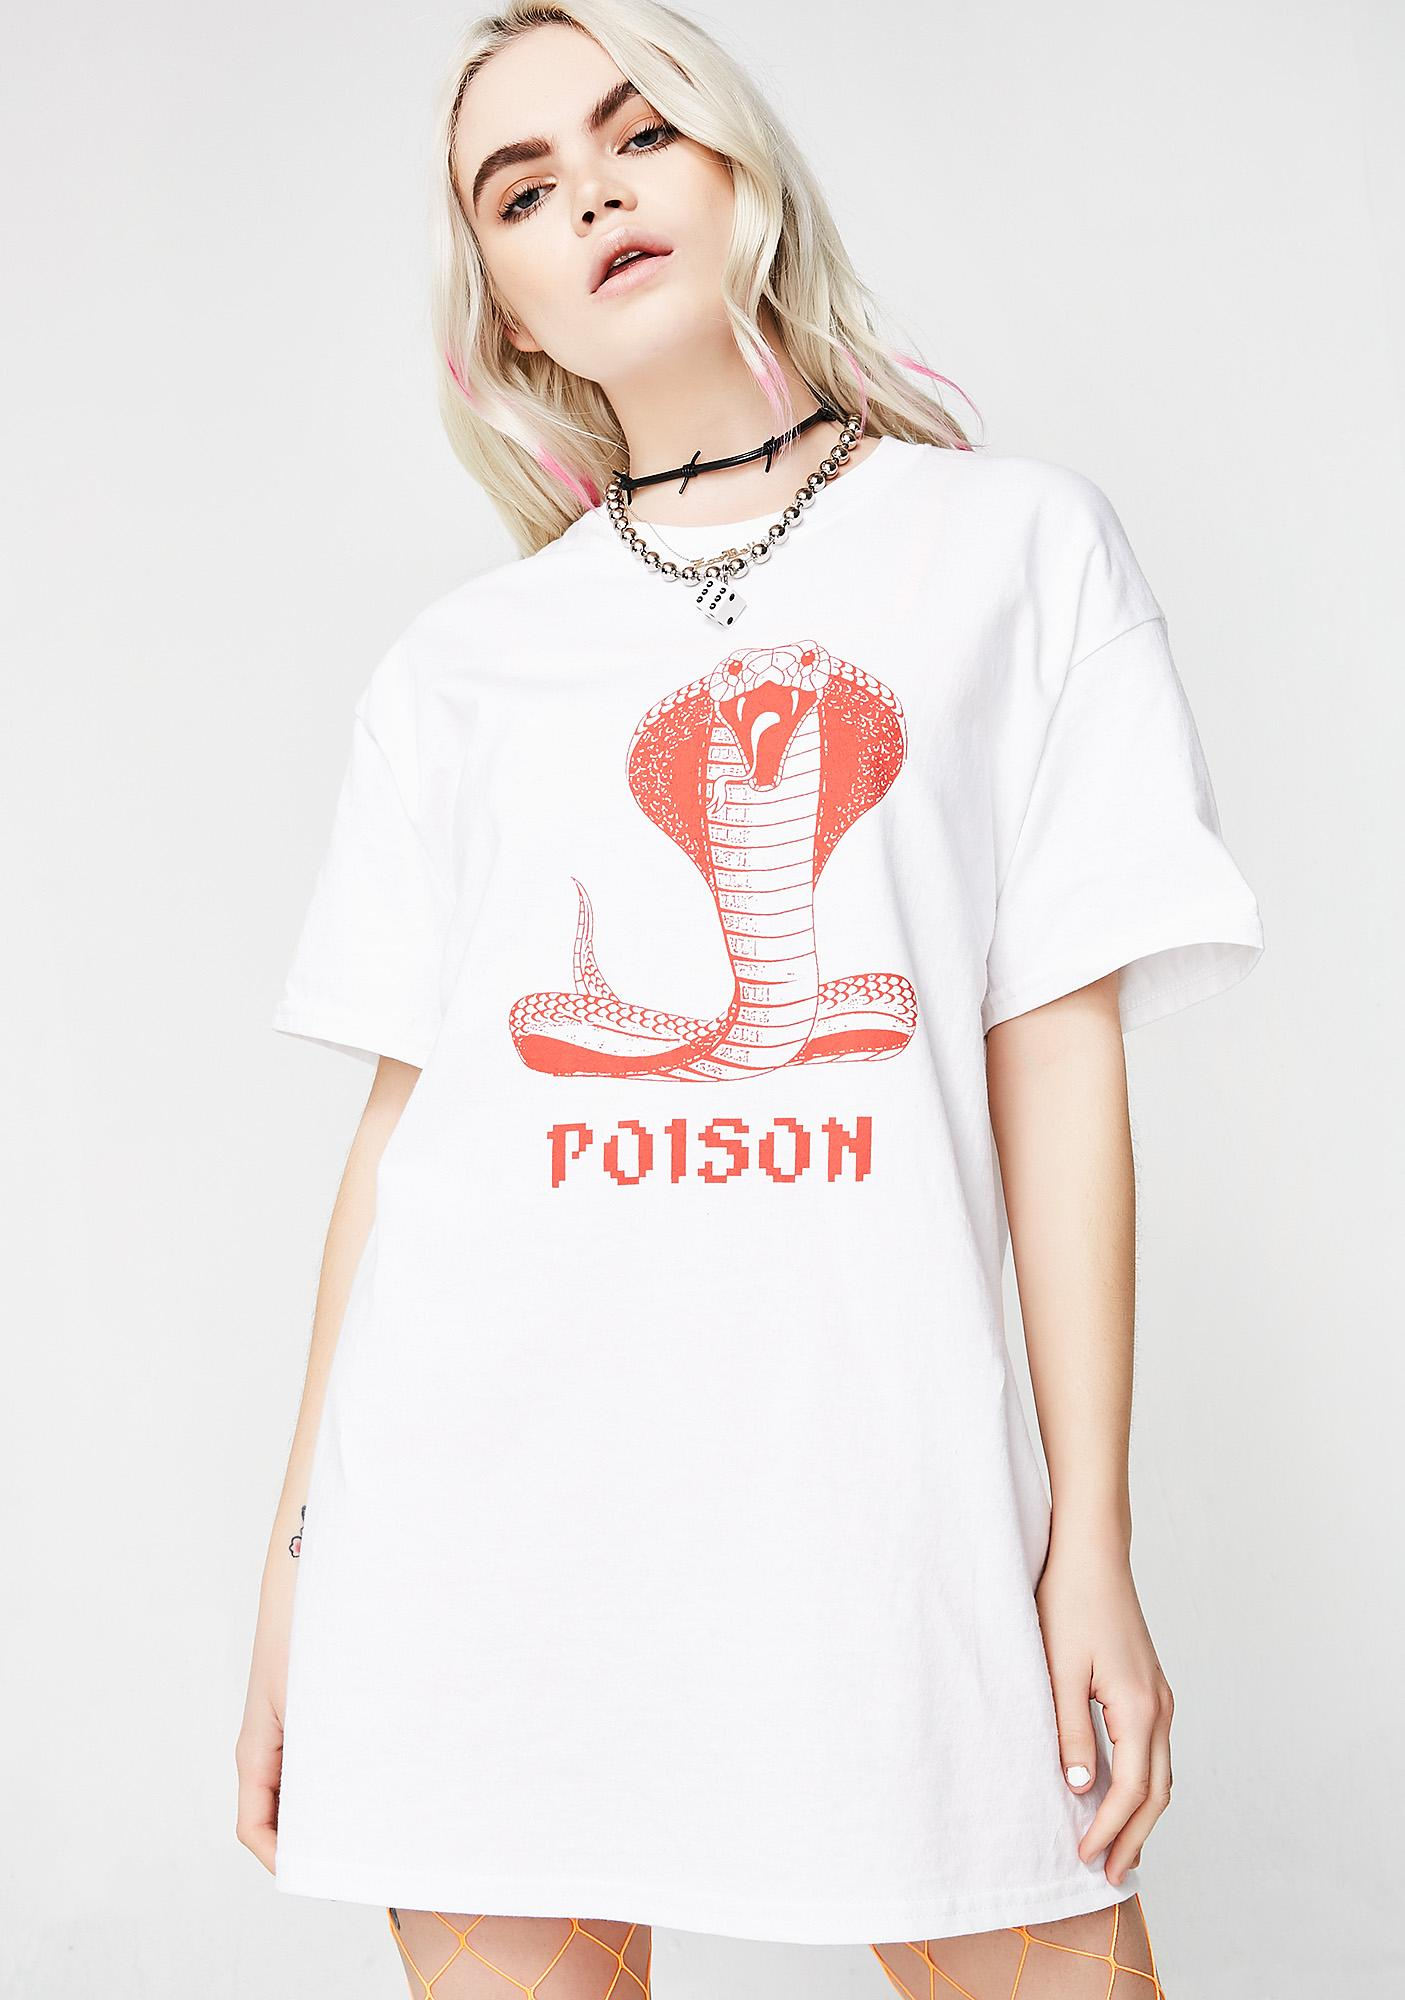 The Ragged Priest Cobra Poison Tee